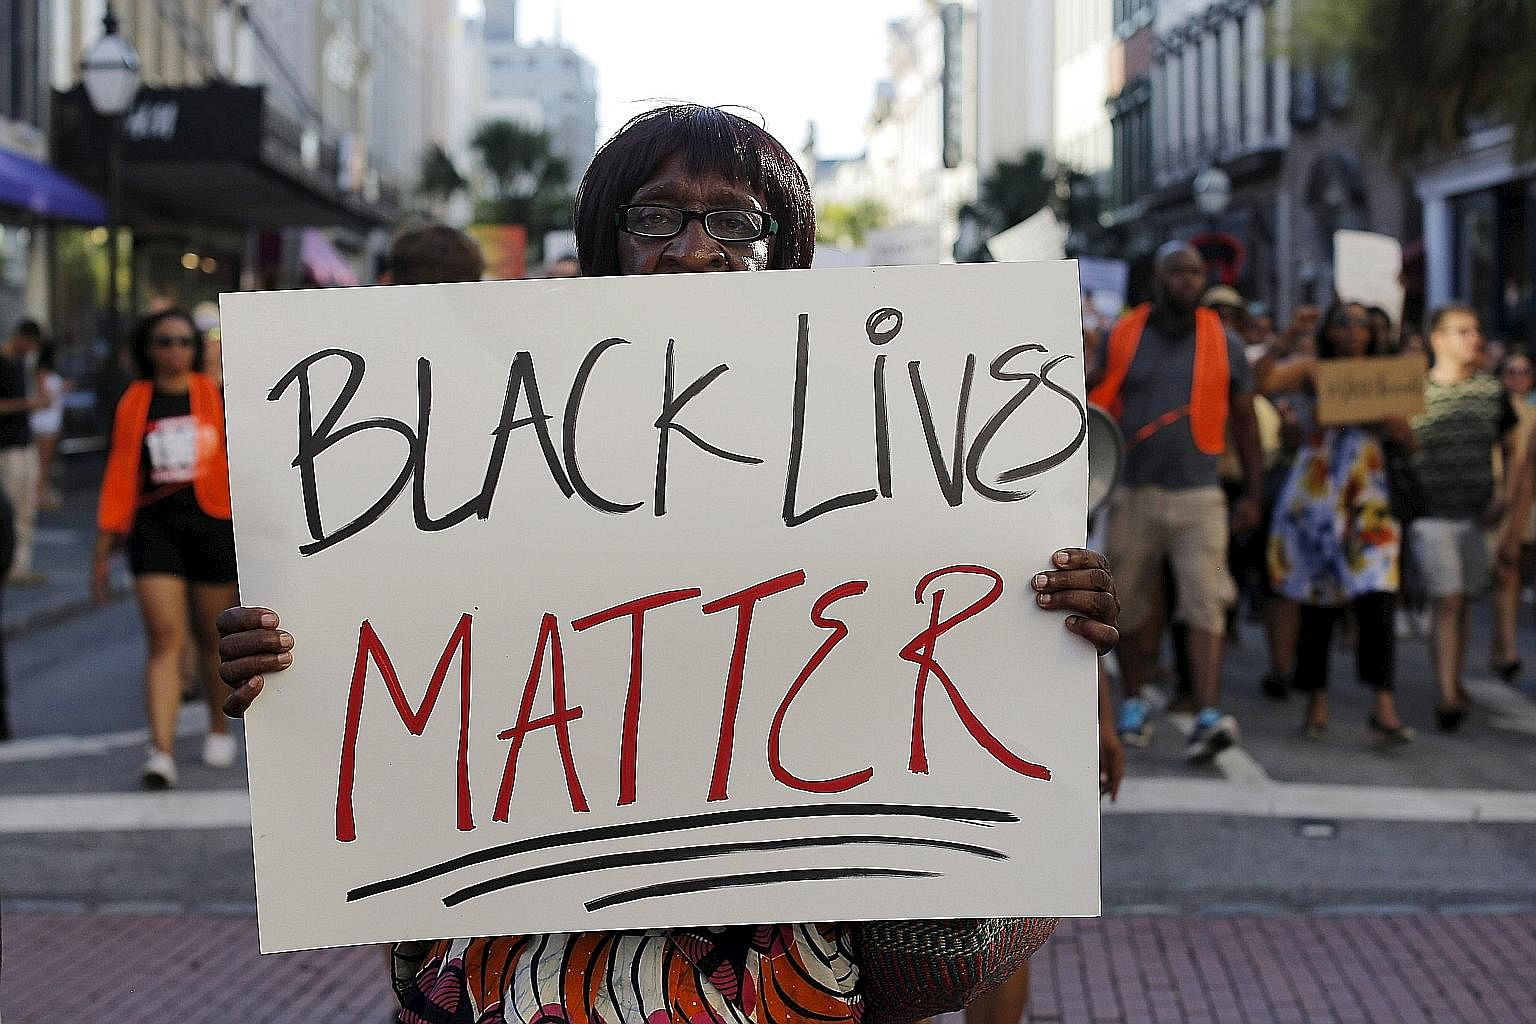 The state of police abuse of African Americans in the US has reached disproportionate levels, and the issue is so serious, America should start looking at how other countries handle racial issues to improve its own system, says the writer.